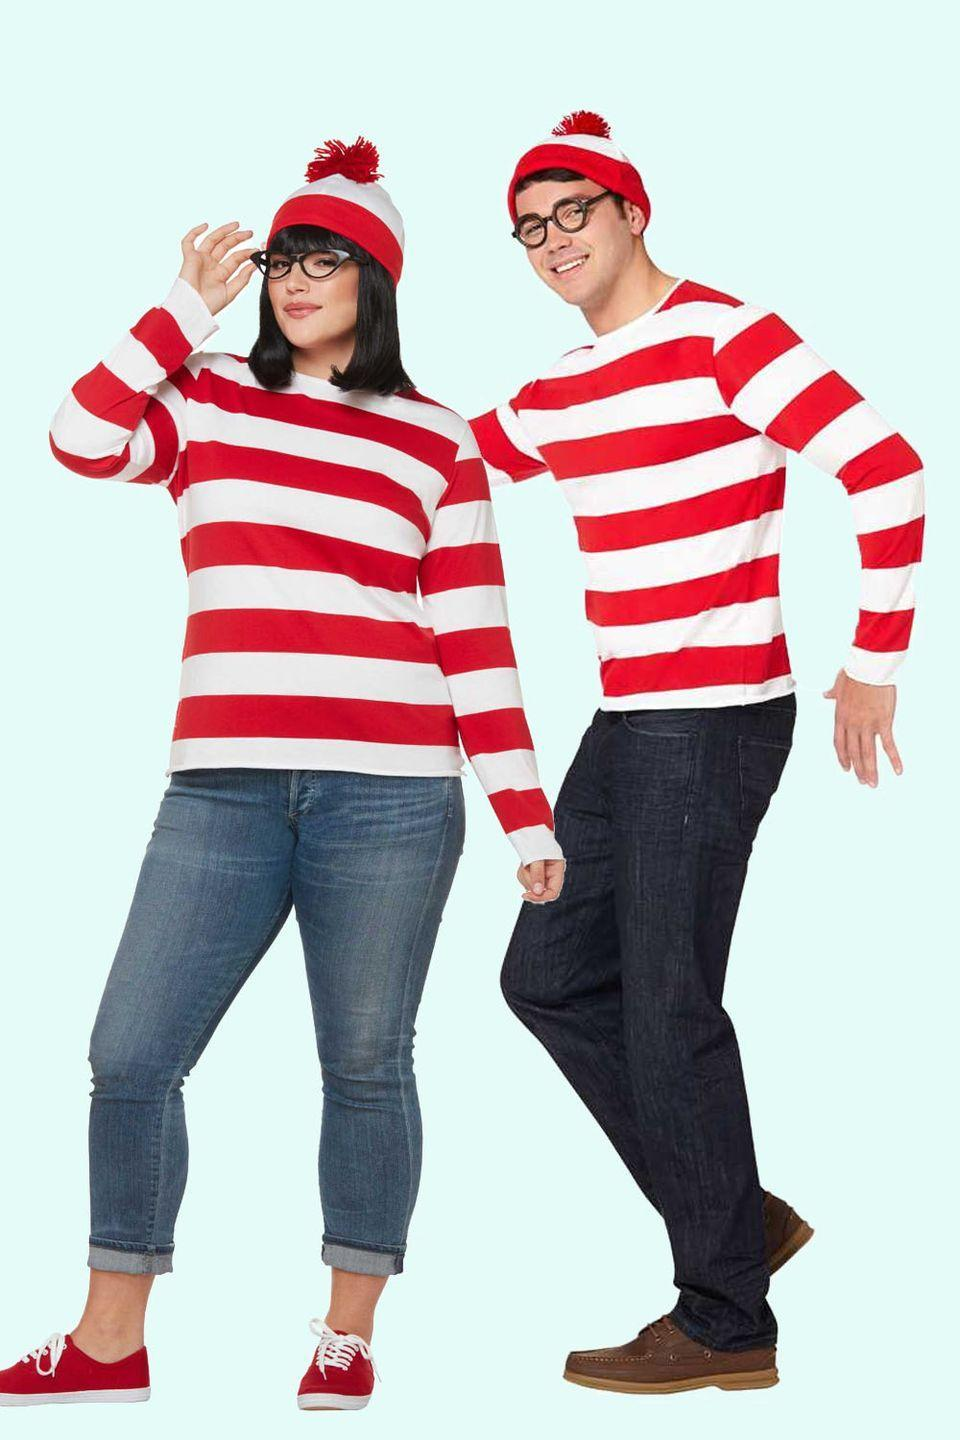 """<p>Recruit two of your friends to dress up as Odlaw and Wizard Whitebeard and you'll have everyone at the party looking for you (including your S.O.)<br></p><p><a class=""""link rapid-noclick-resp"""" href=""""https://www.amazon.com/Rubies-Costume-Co-Unisex-Adults-Standard/dp/B079GJ37Q5/?tag=syn-yahoo-20&ascsubtag=%5Bartid%7C10055.g.2625%5Bsrc%7Cyahoo-us"""" rel=""""nofollow noopener"""" target=""""_blank"""" data-ylk=""""slk:SHOP WANDA AND WALDO COSTUMES"""">SHOP WANDA AND WALDO COSTUMES</a> </p>"""